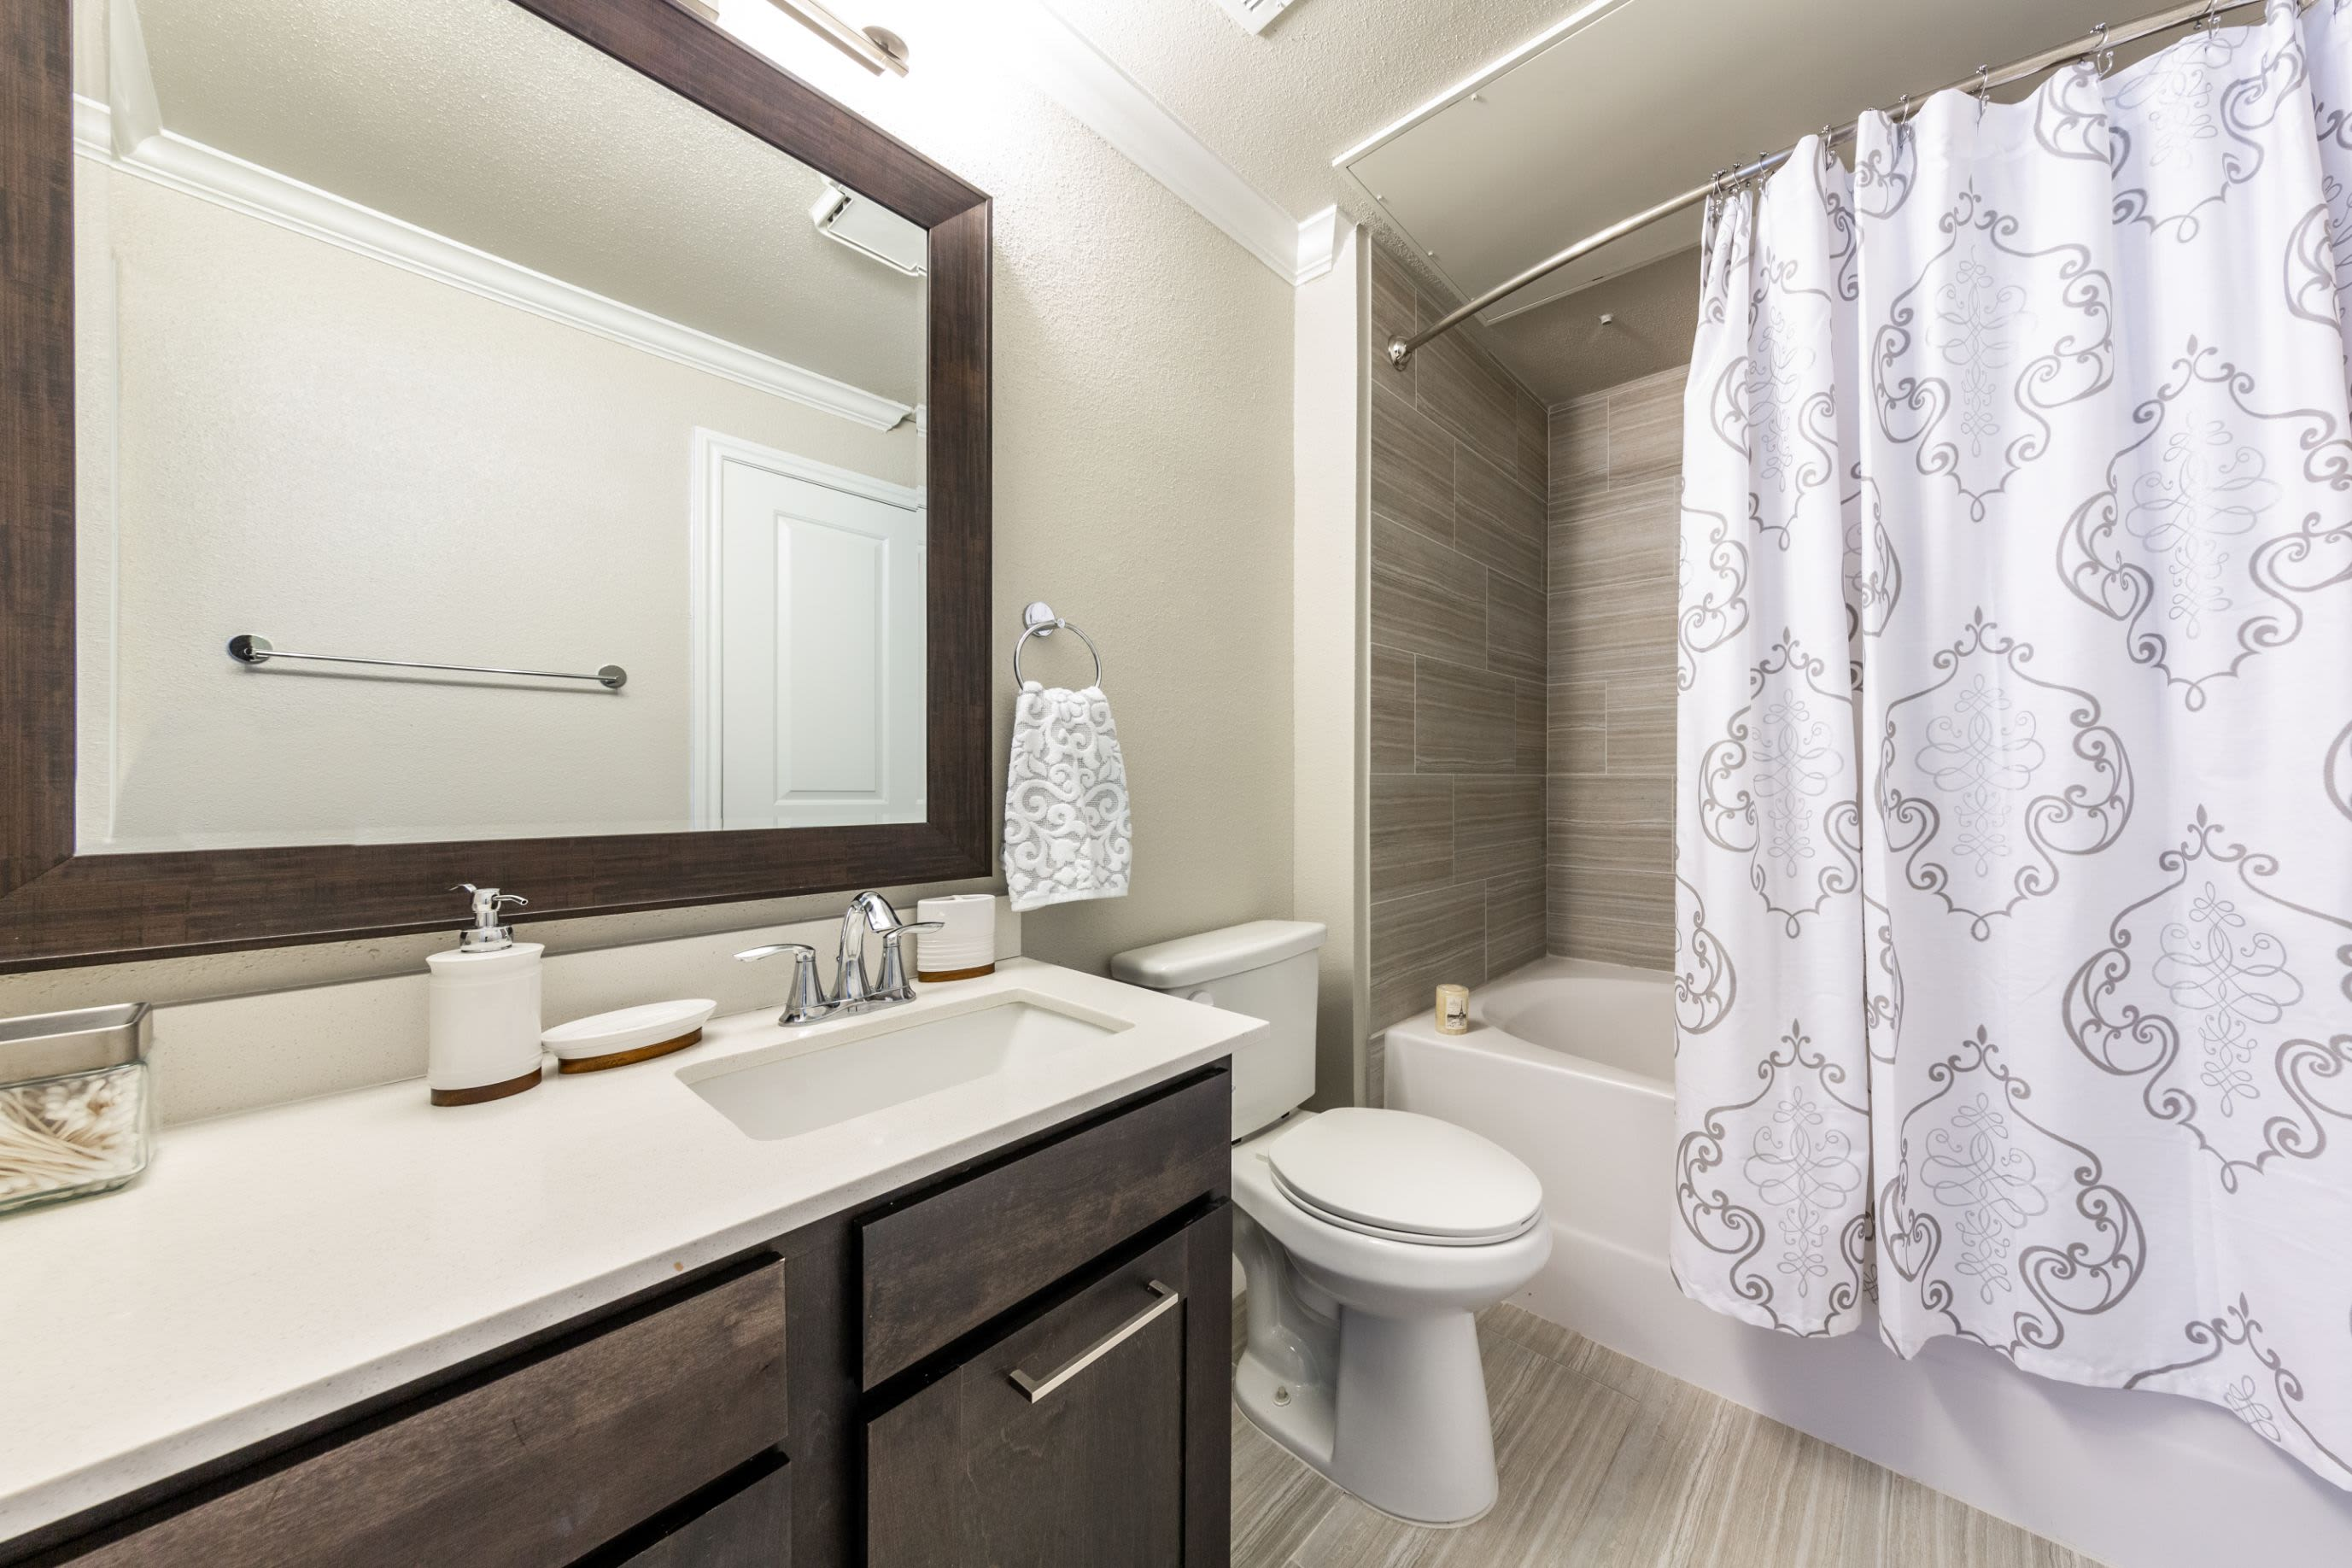 Bathroom with white countertops at Marquis on Memorial in Houston, Texas